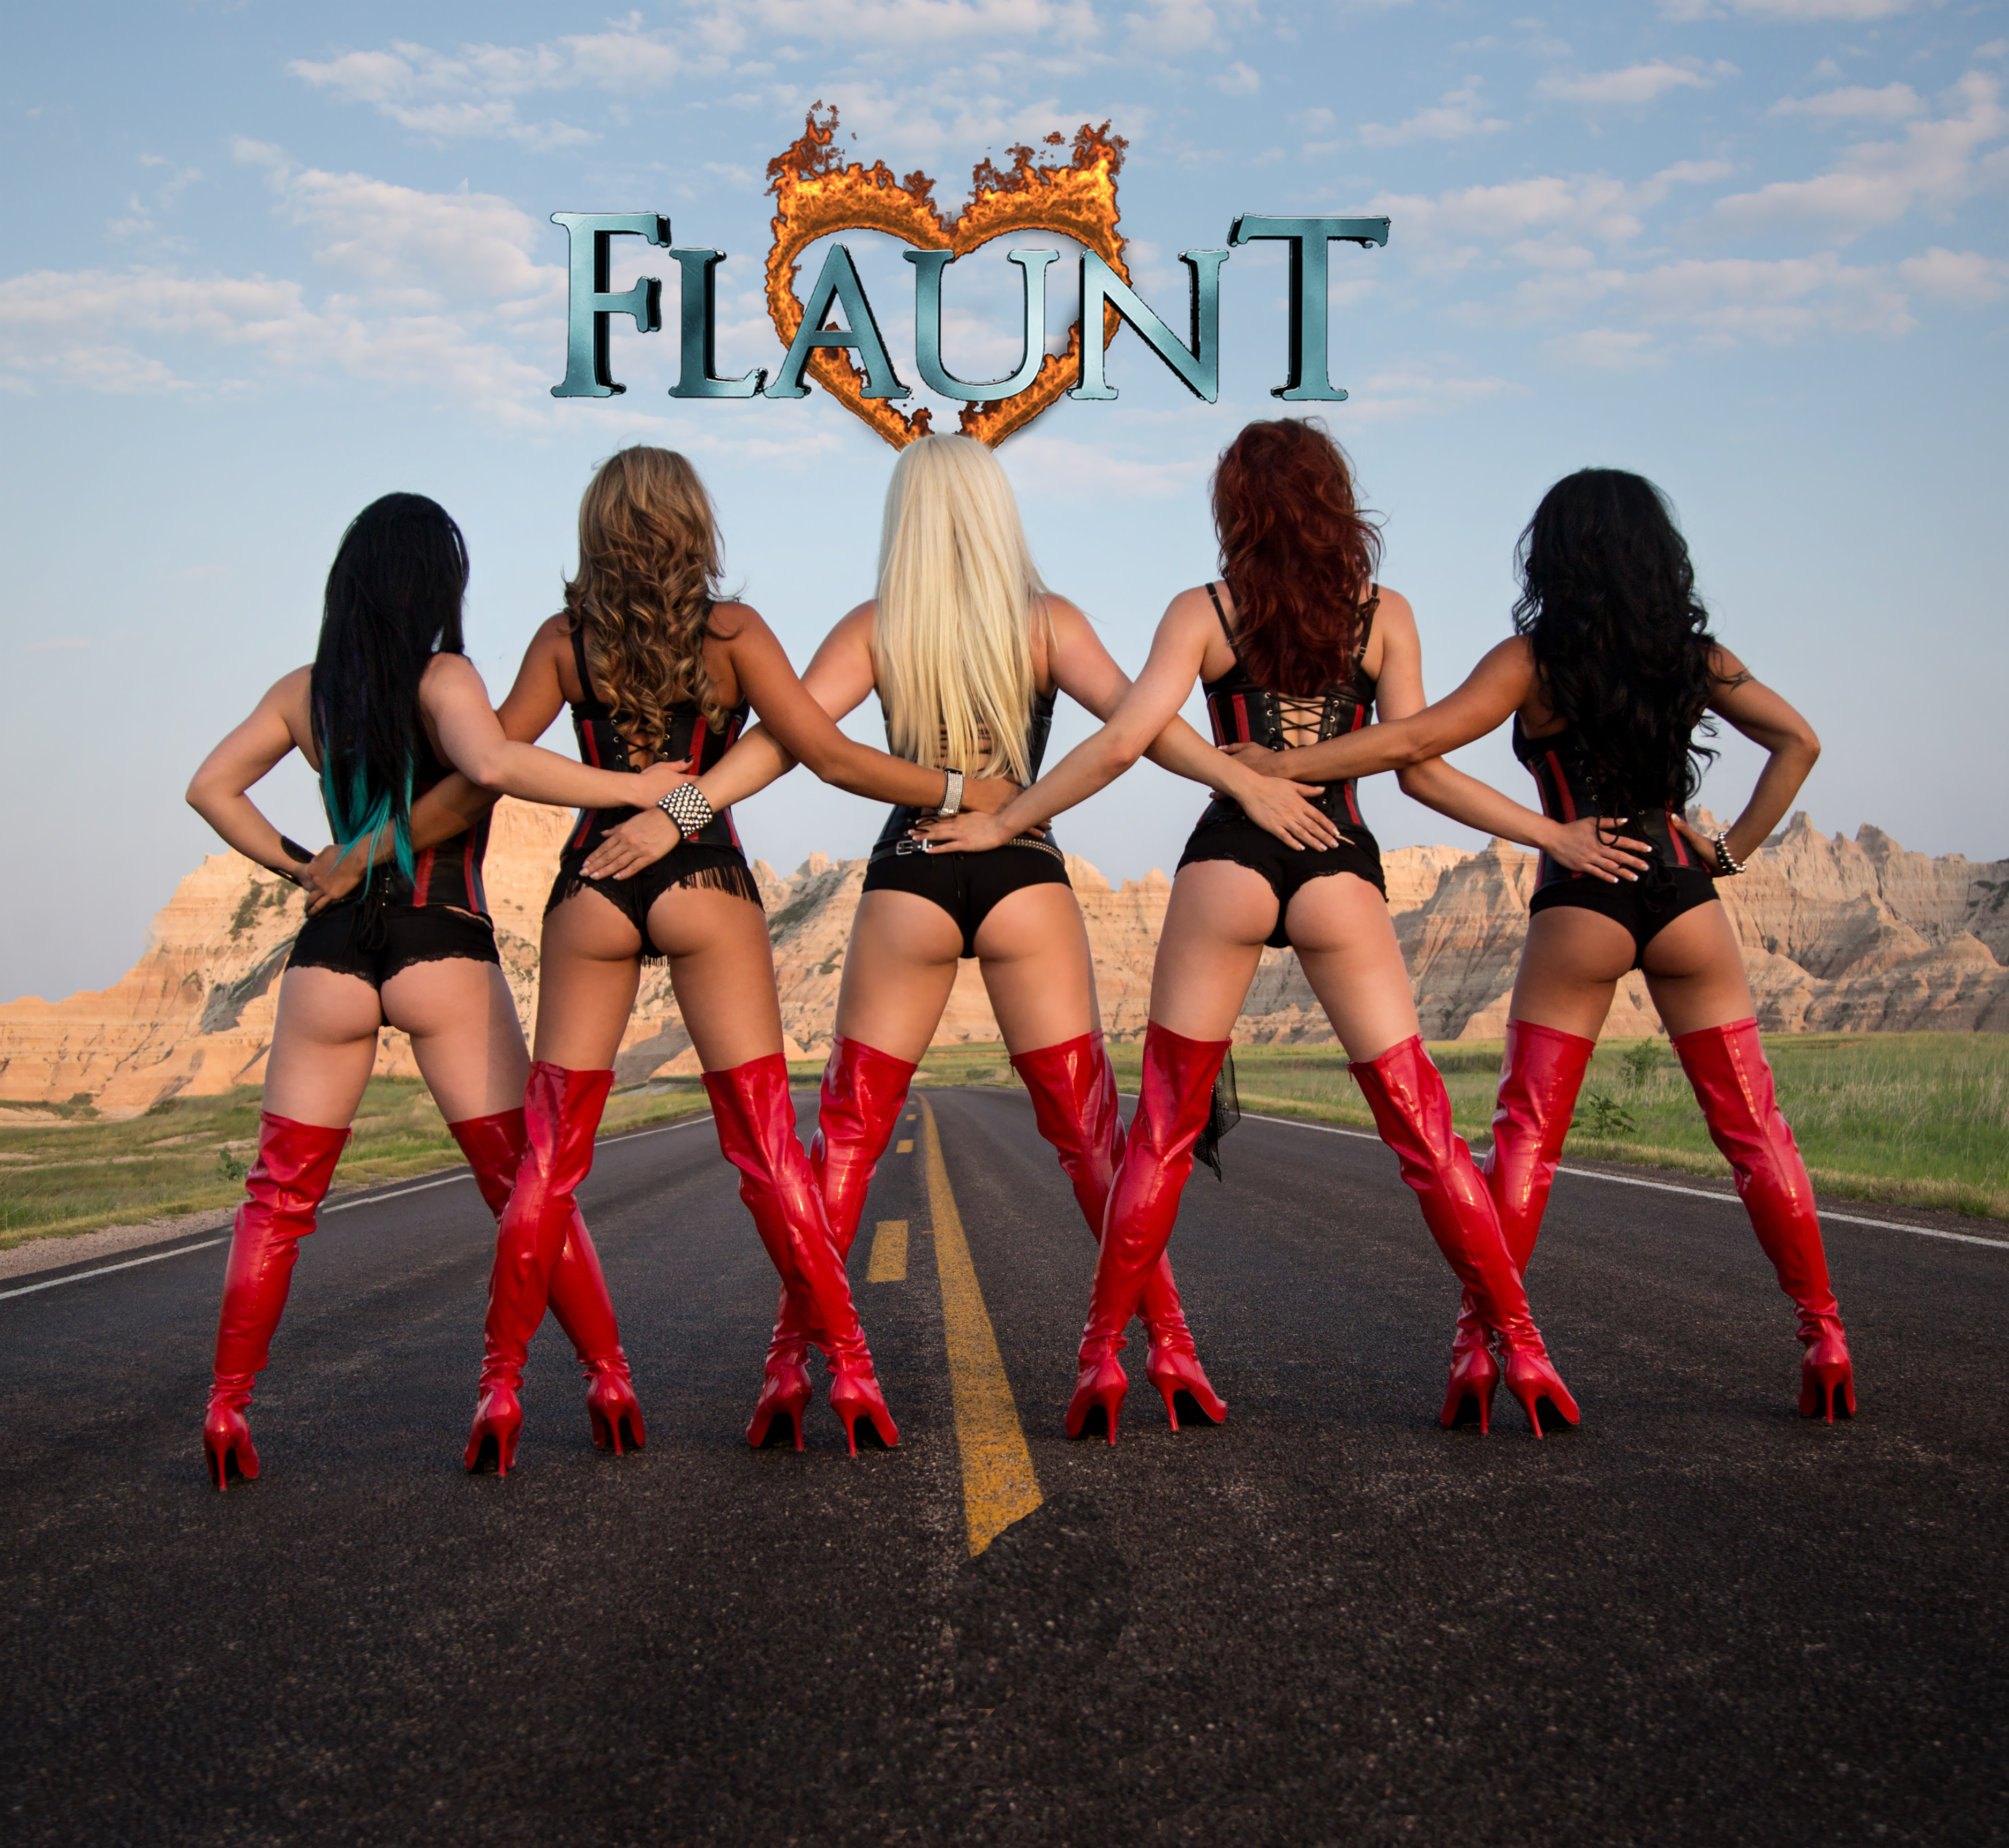 Flaunt Girls - The Dirty Dogg Saloon